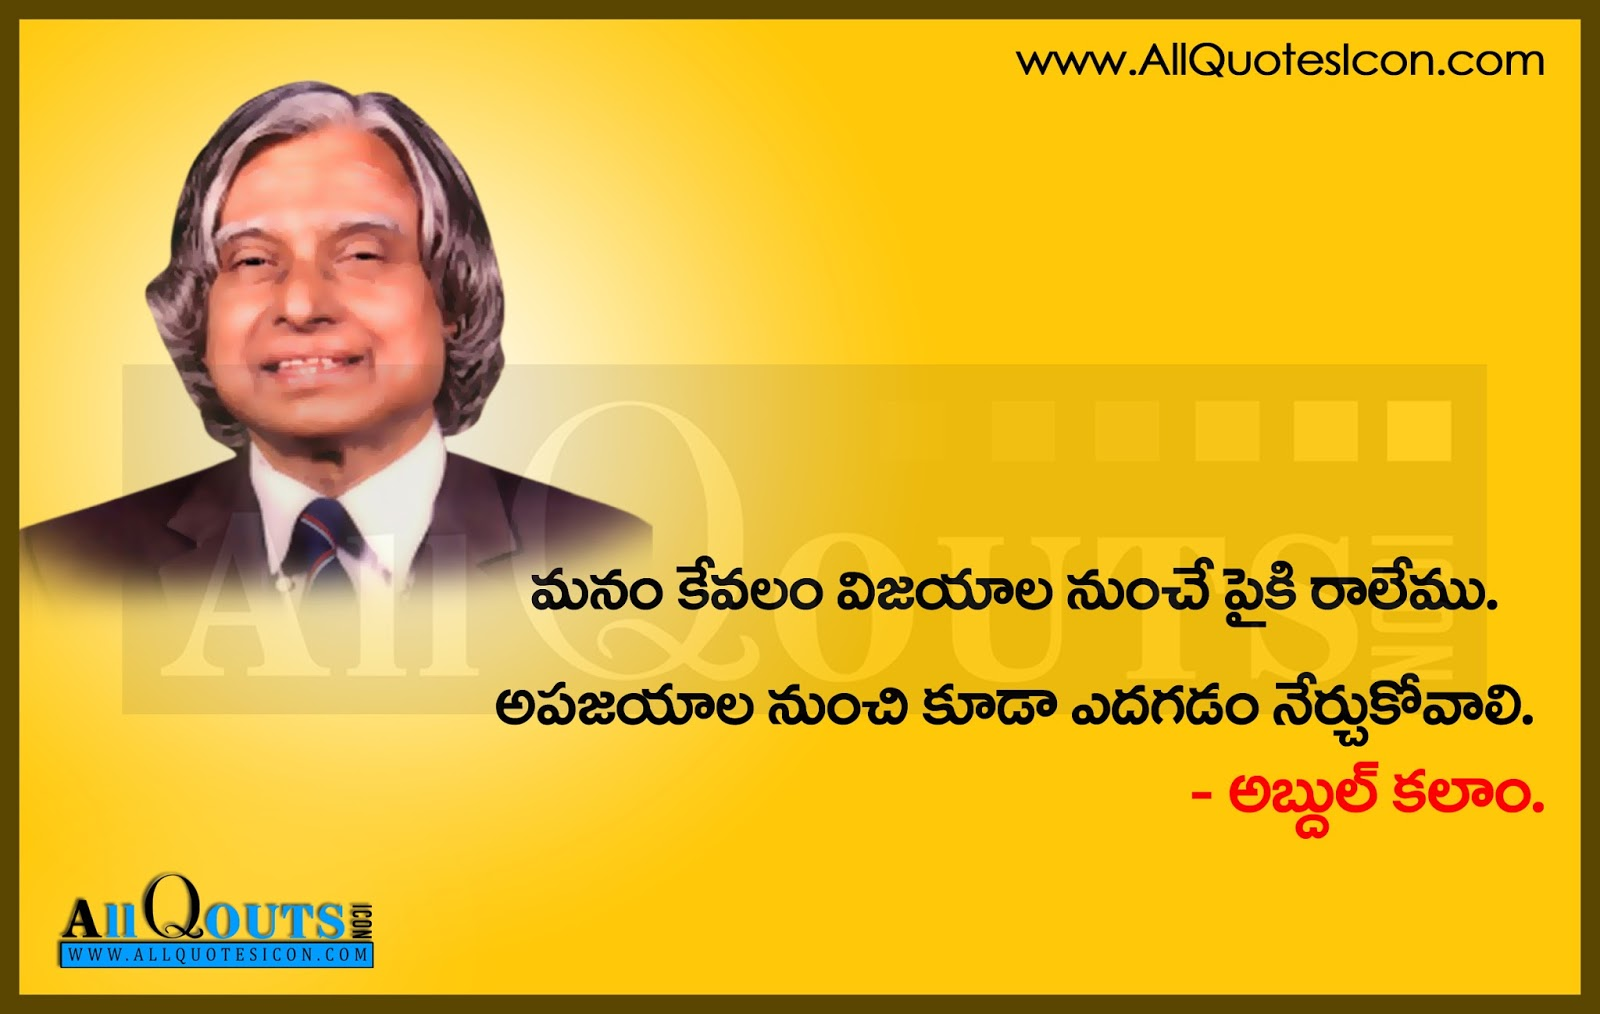 Abdul Kalam Sayings And Quotes In Telugu Life Inspiration Quotes In